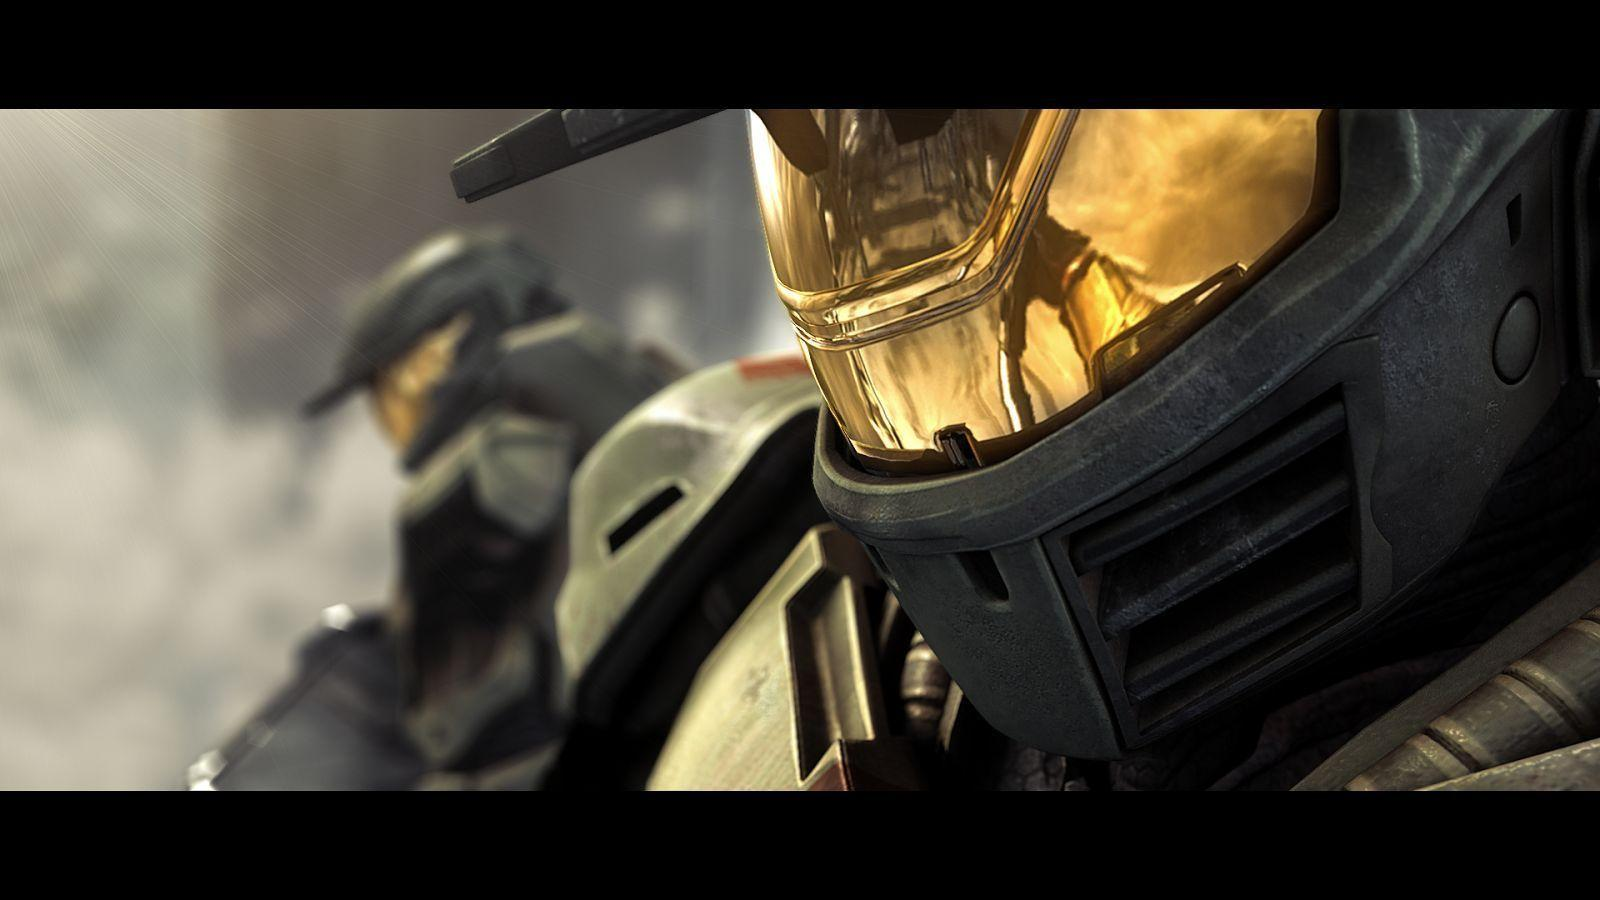 halo wallpapers hd 1080p